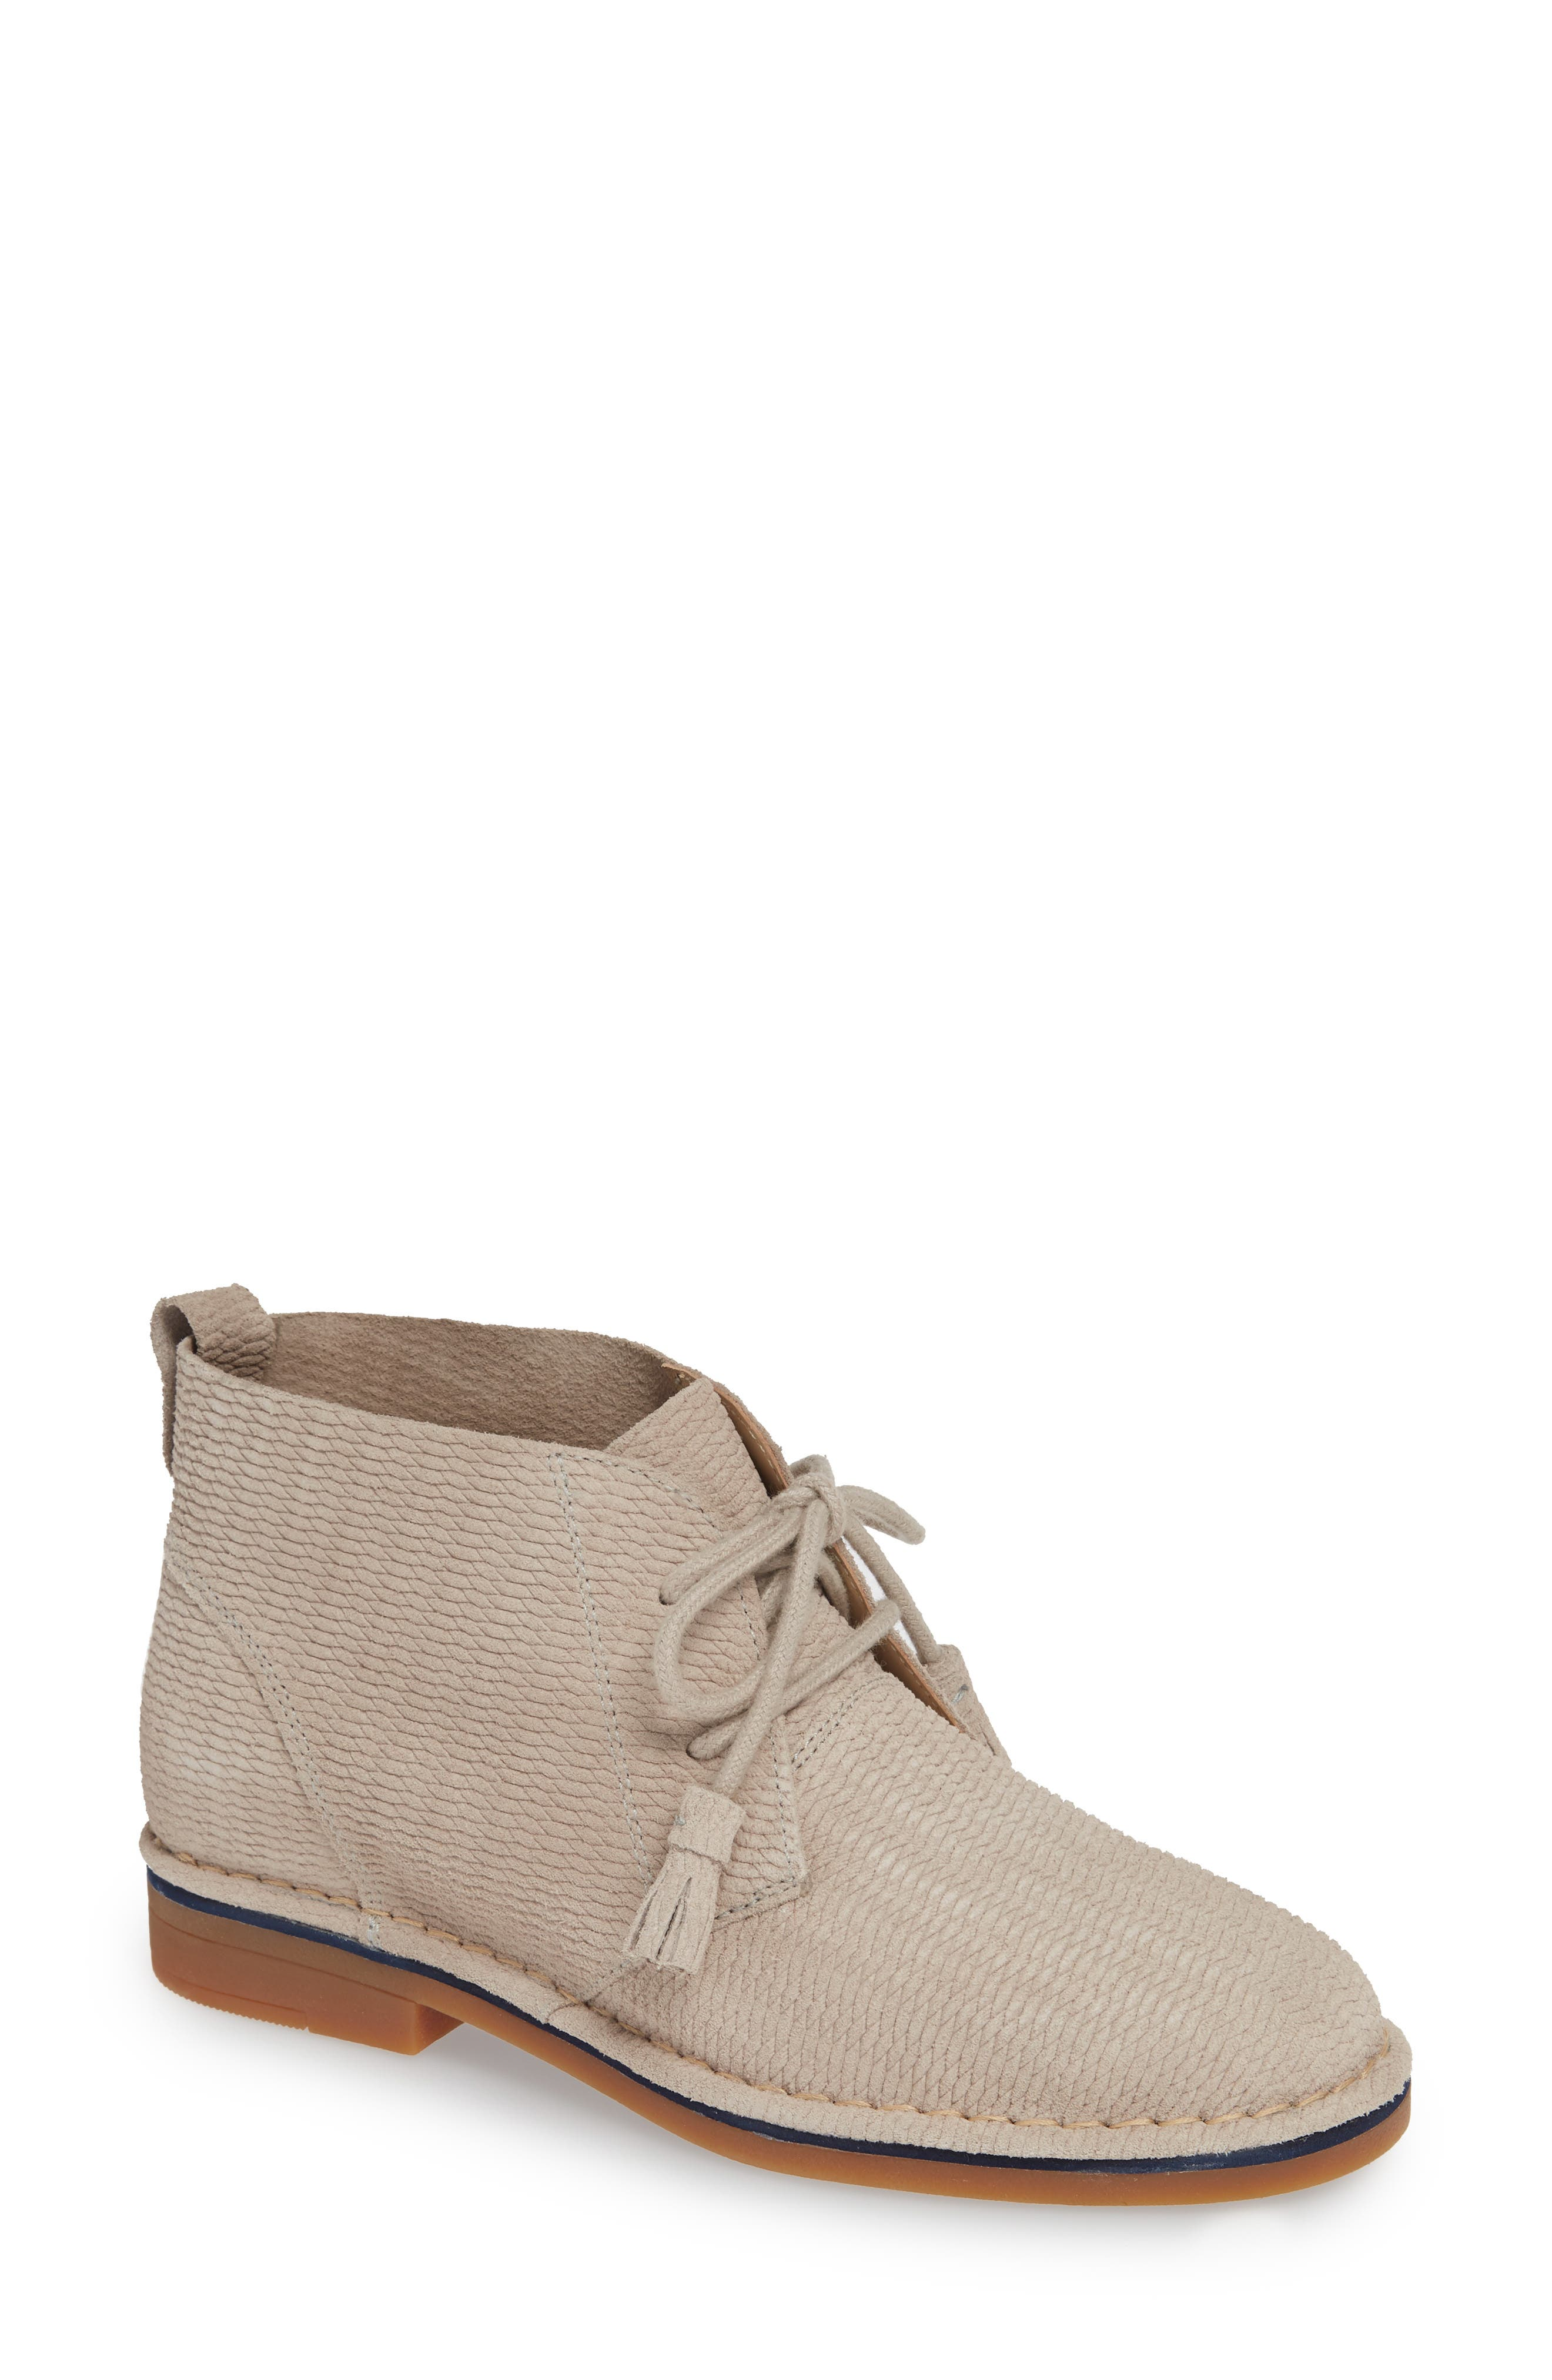 'Cyra Catelyn' Chukka Boot,                         Main,                         color, ICE GREY SUEDE